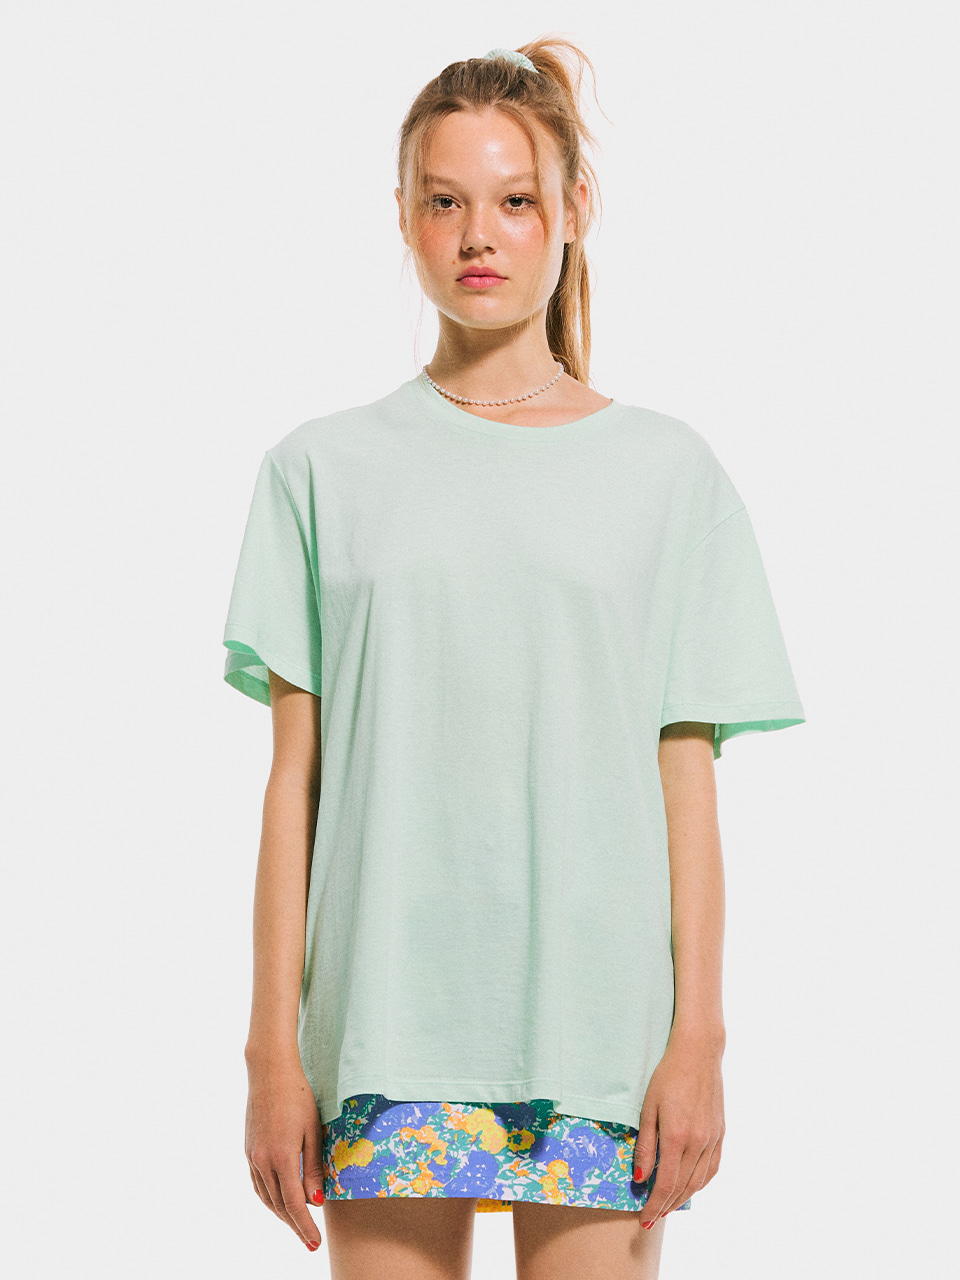 Boxy T shirt_Melon